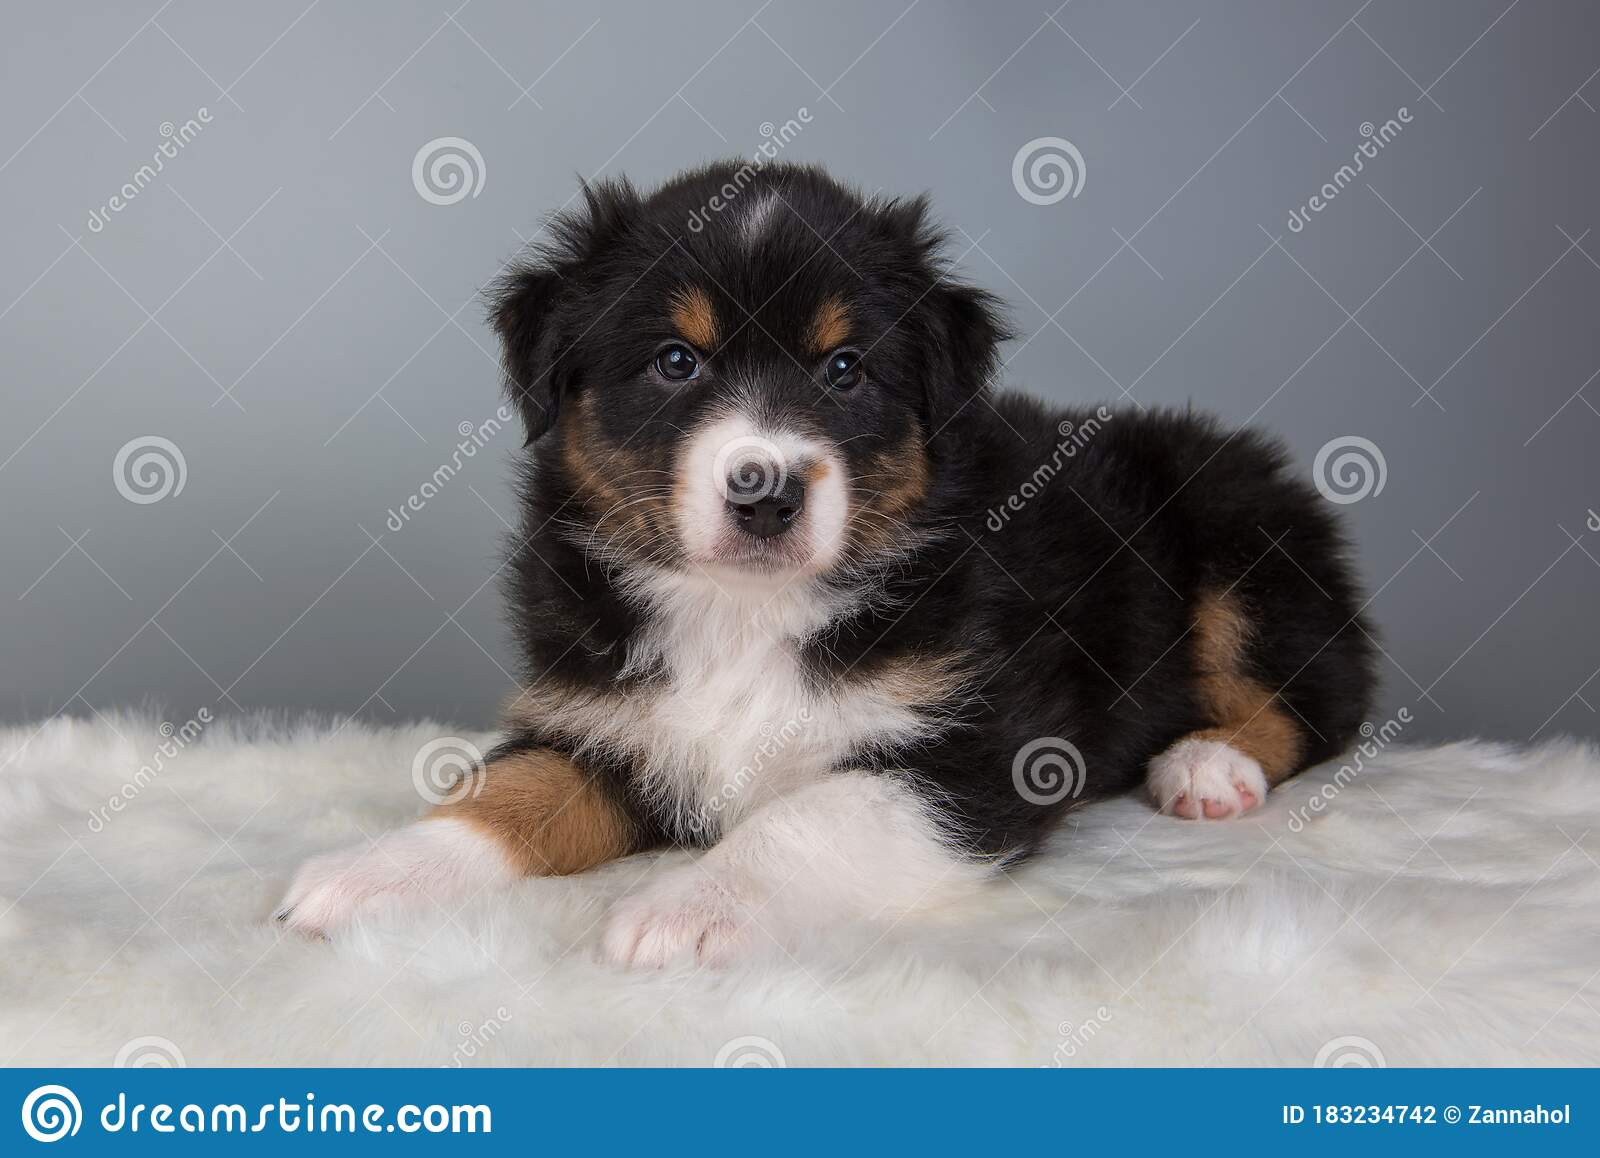 Australian Shepherd Tri Color Black Tan Puppy Dog Stock Photo Image Of Brown Natural 183234742